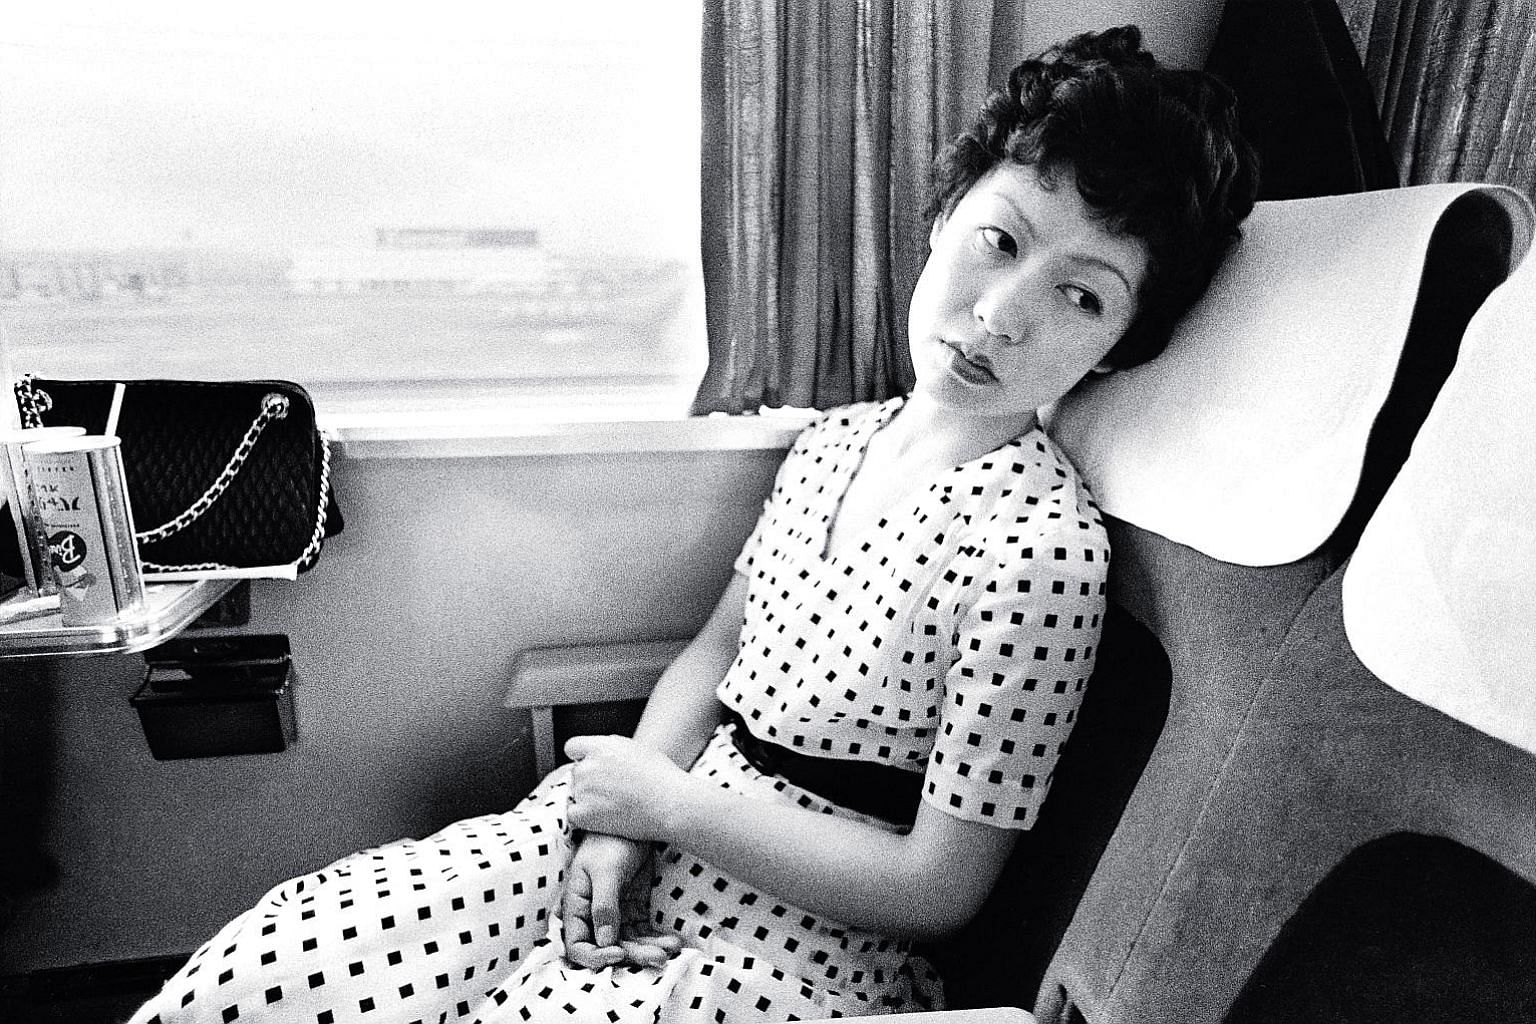 In more than 130 photographs, Between Love And Death: Diary Of Nobuyoshi Araki chronicles Japanese photographer Araki's relationship with his wife, essayist Yoko Aoki (above), who died of ovarian cancer in 1990. Nguan's Singapore depicts slices of li